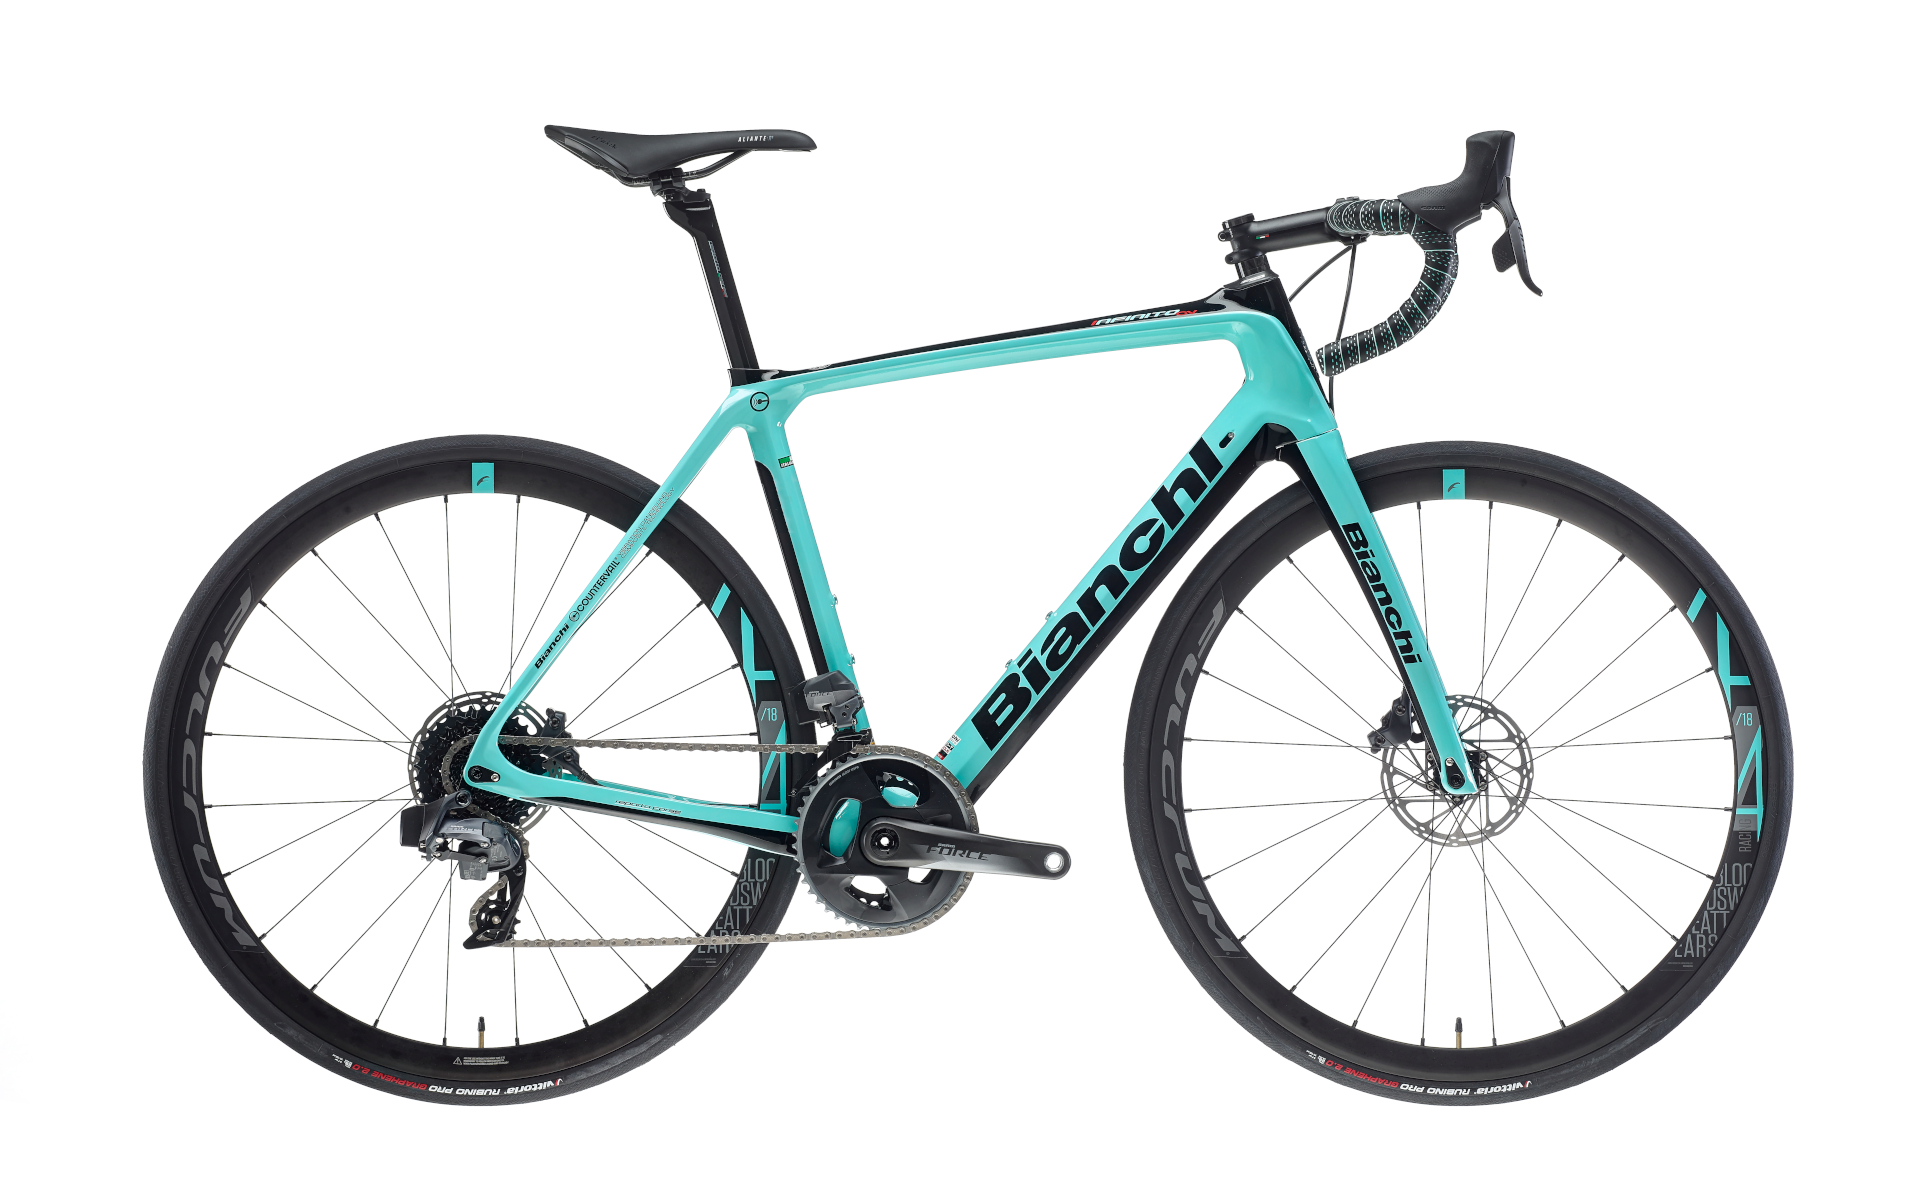 Infinito CV Disc – Force eTap AXS 12sp